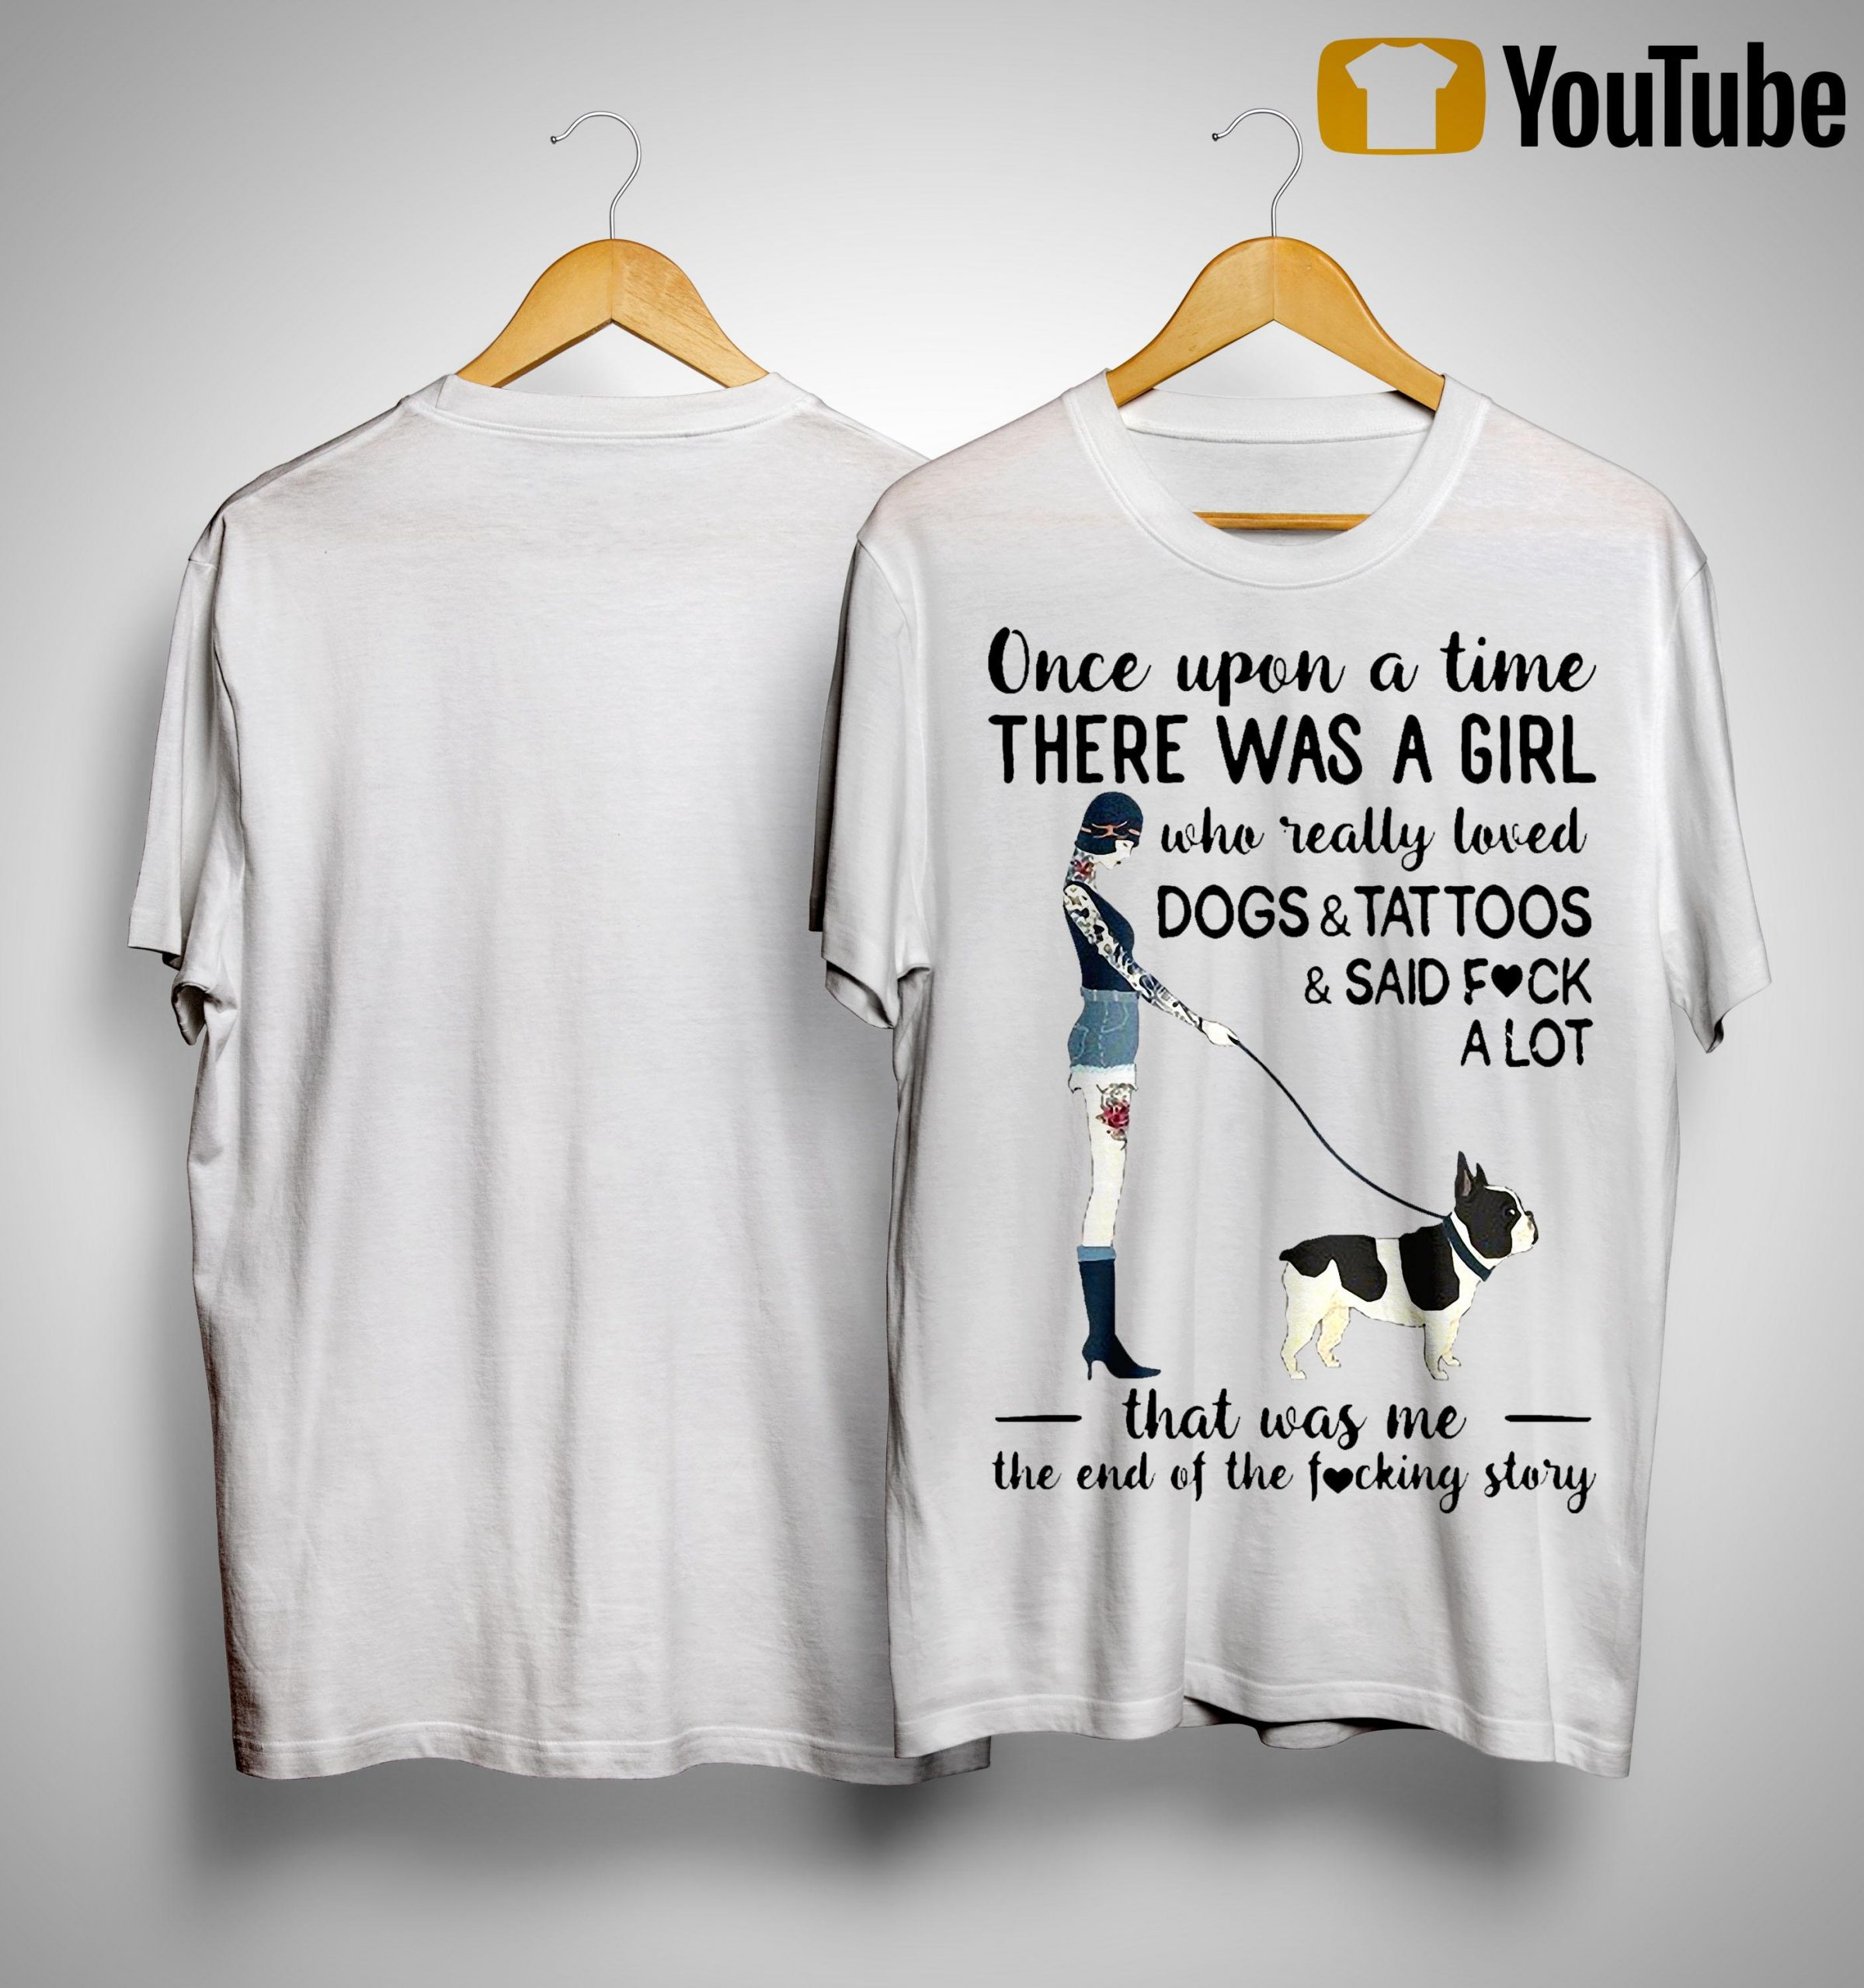 Once Upon A Time There Was A Girl Who Really Loved Dogs And Tattoos And Said Fuck Alot Shirt